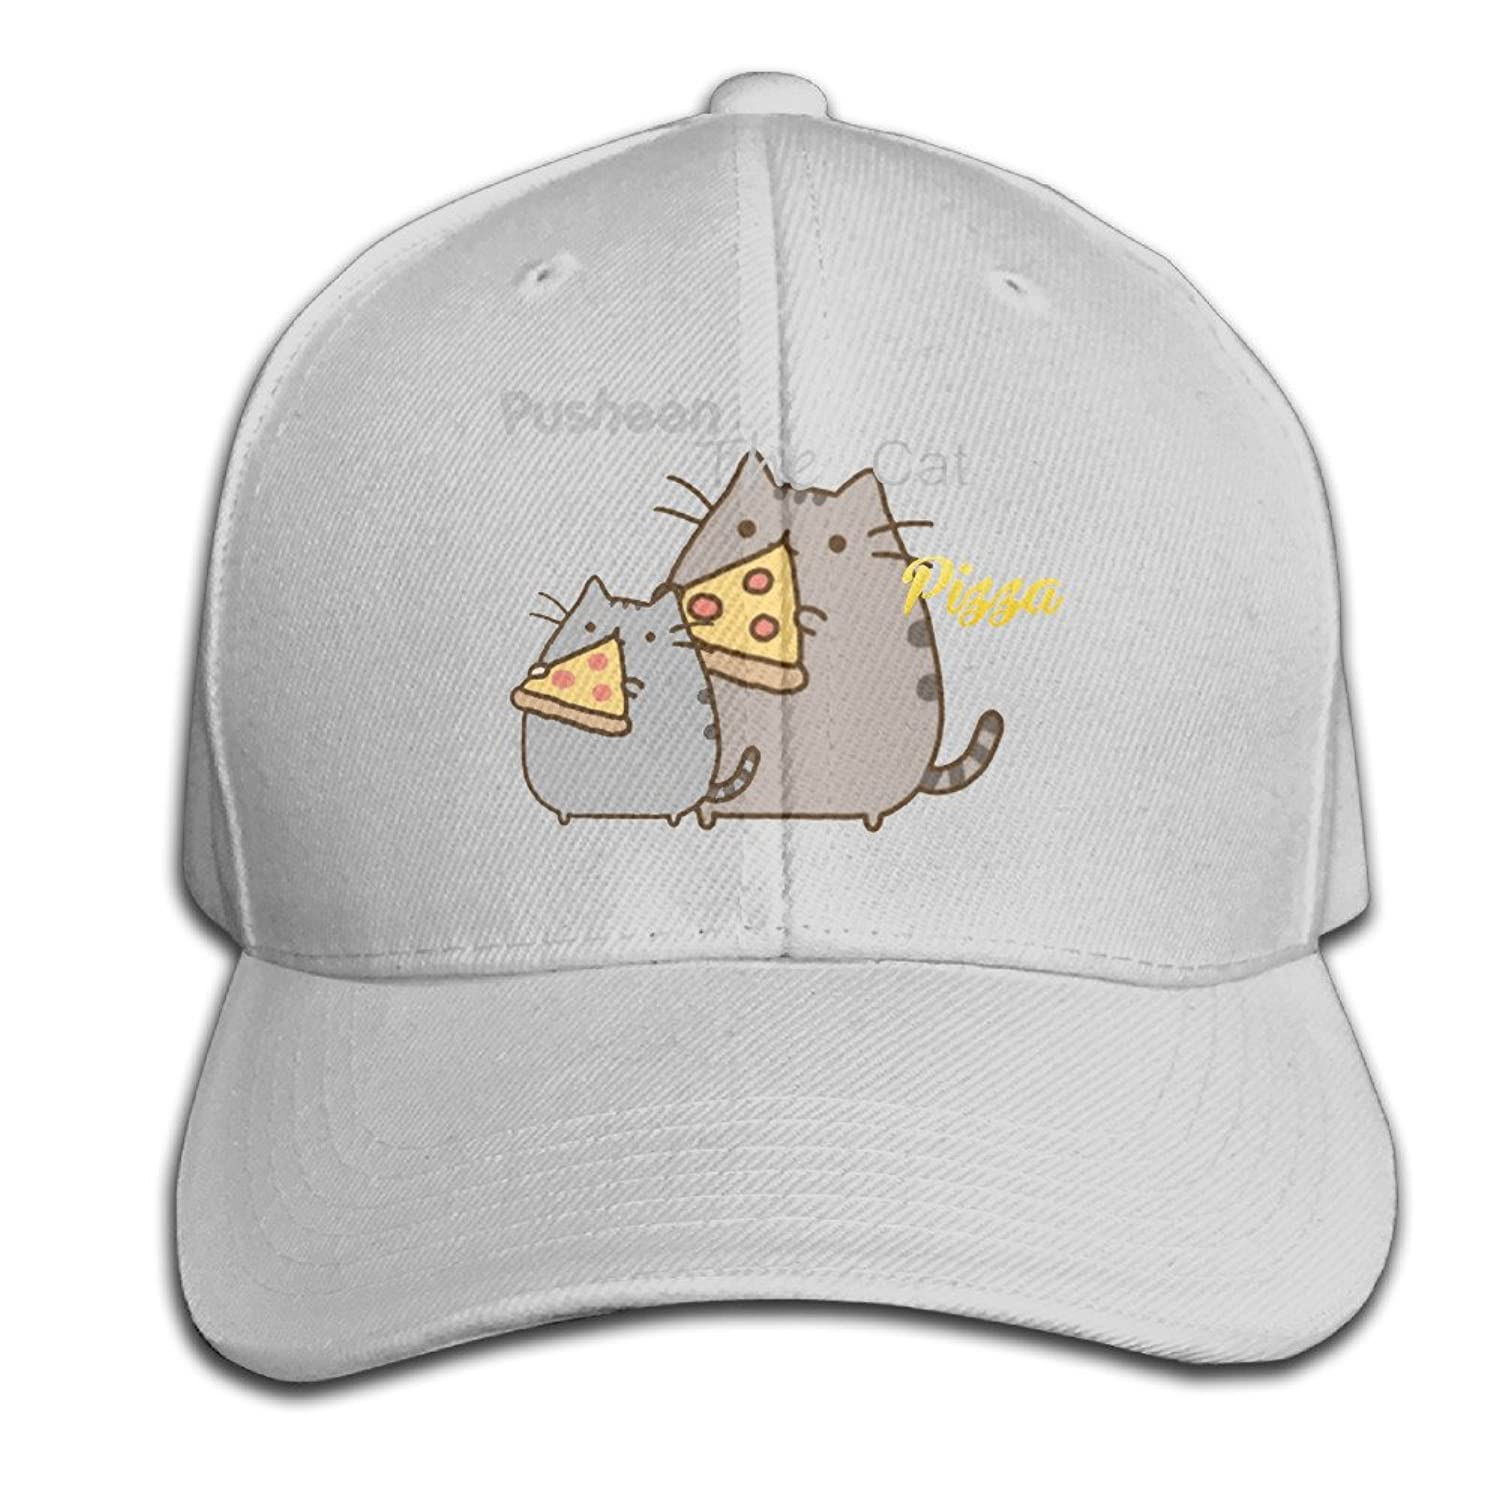 Boy Fitted Hats Pusheen Cat Pizza Adjustable Cheap Snapbacks